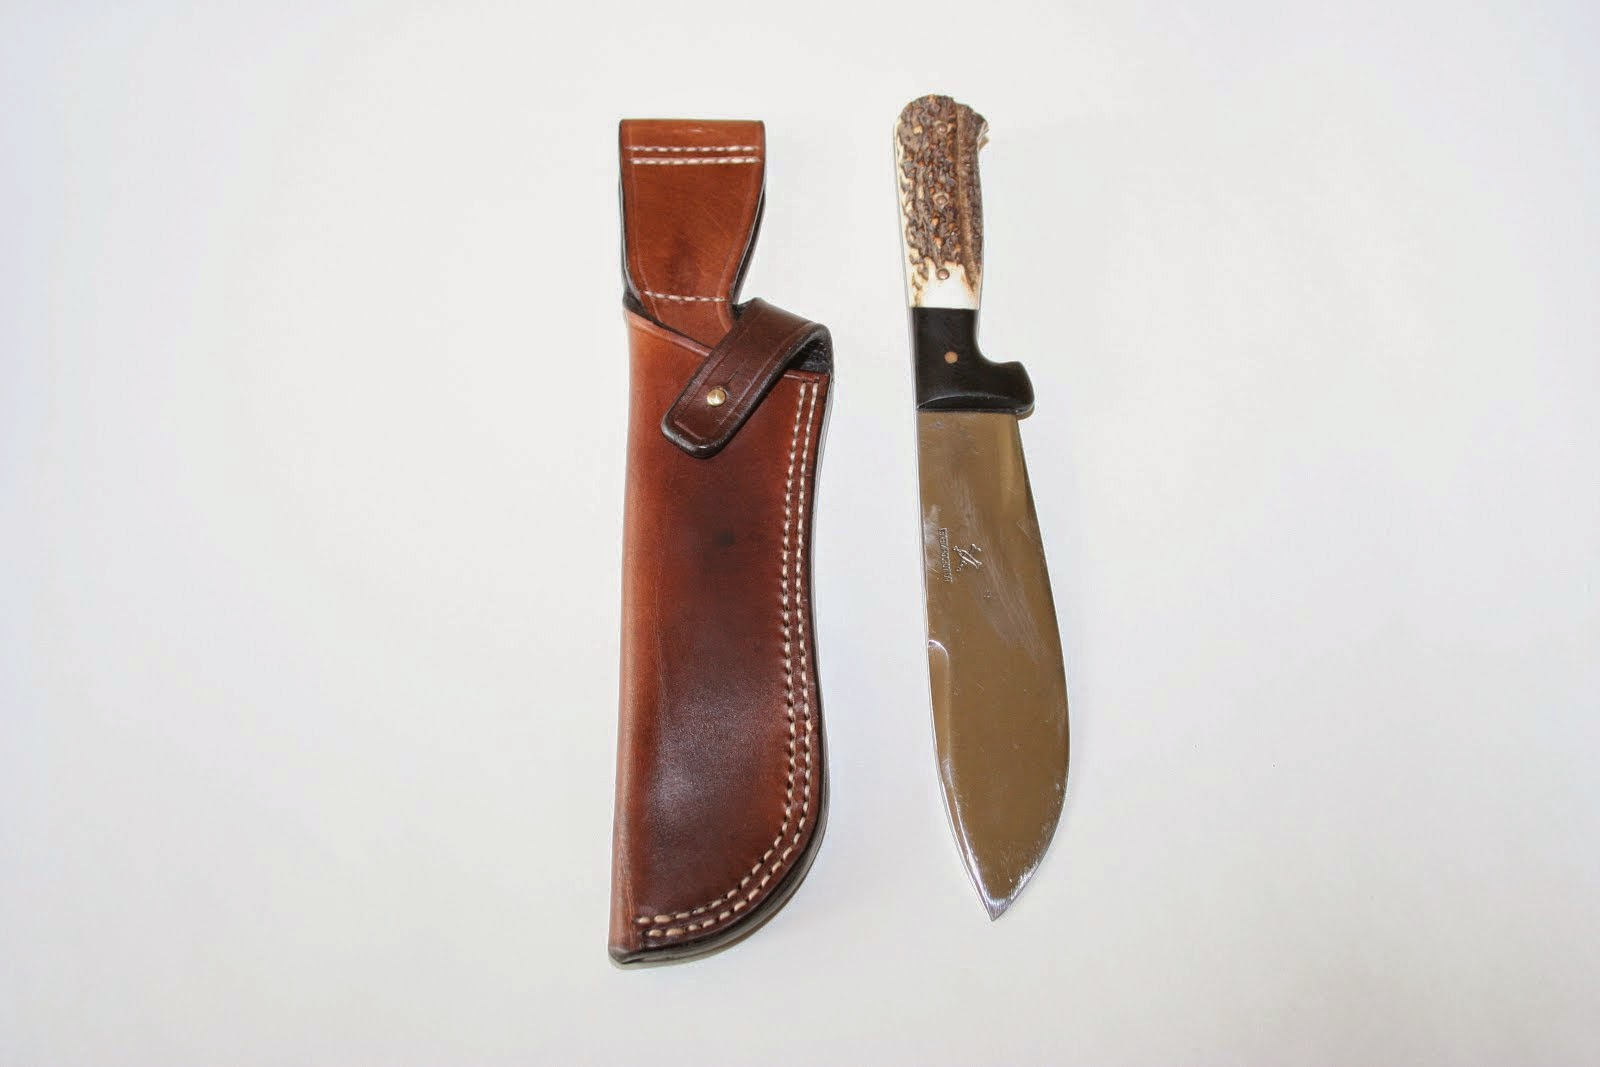 Custom Sheath for Austrian hunting knife